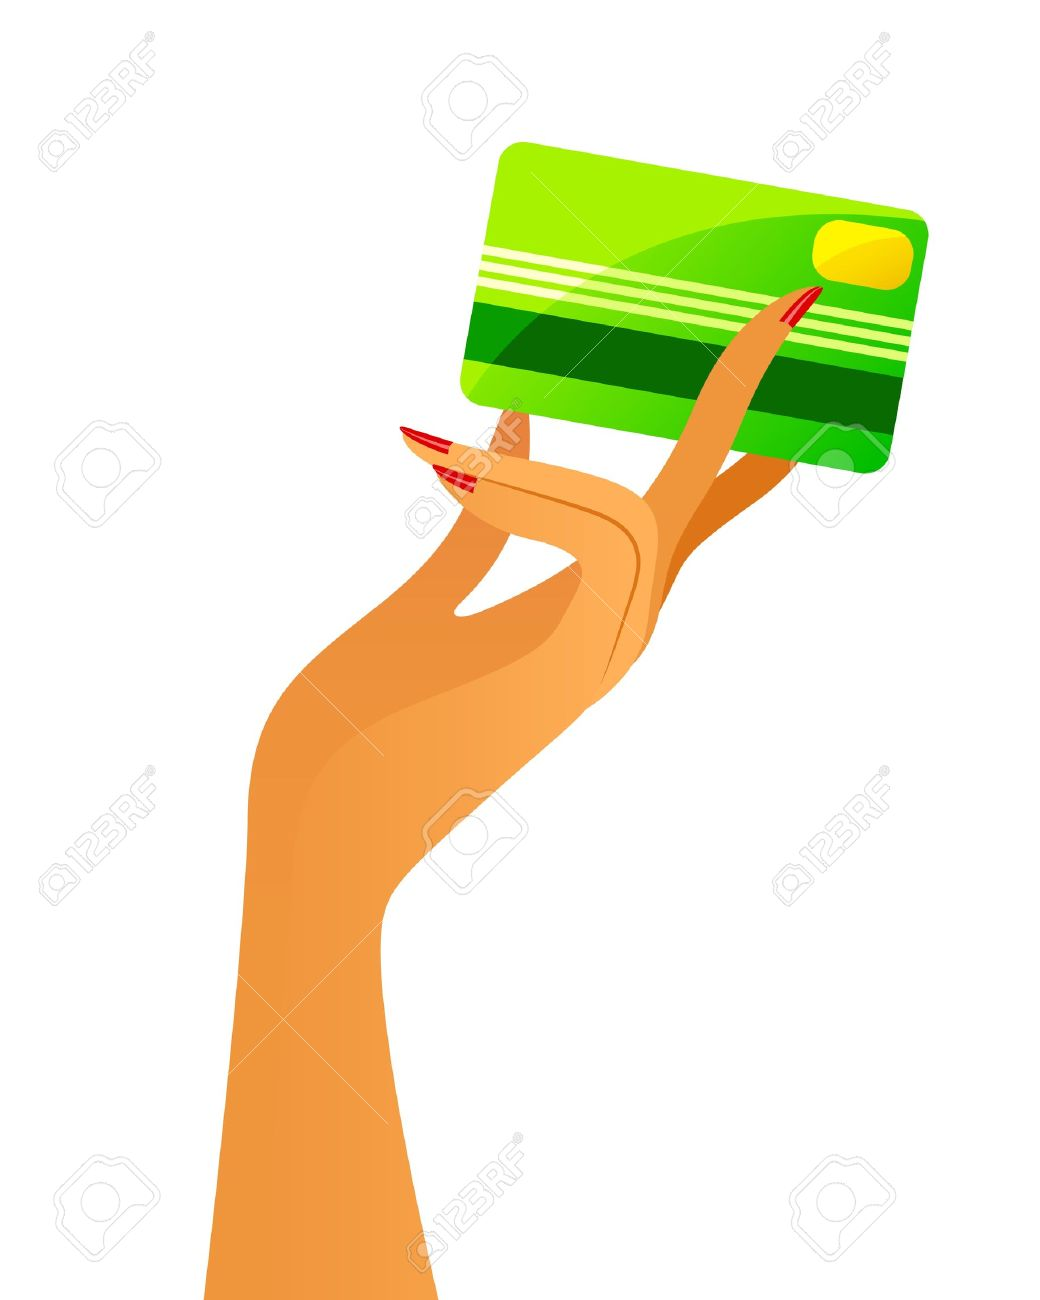 woman s hand holding a credit card Stock Vector - 20406427